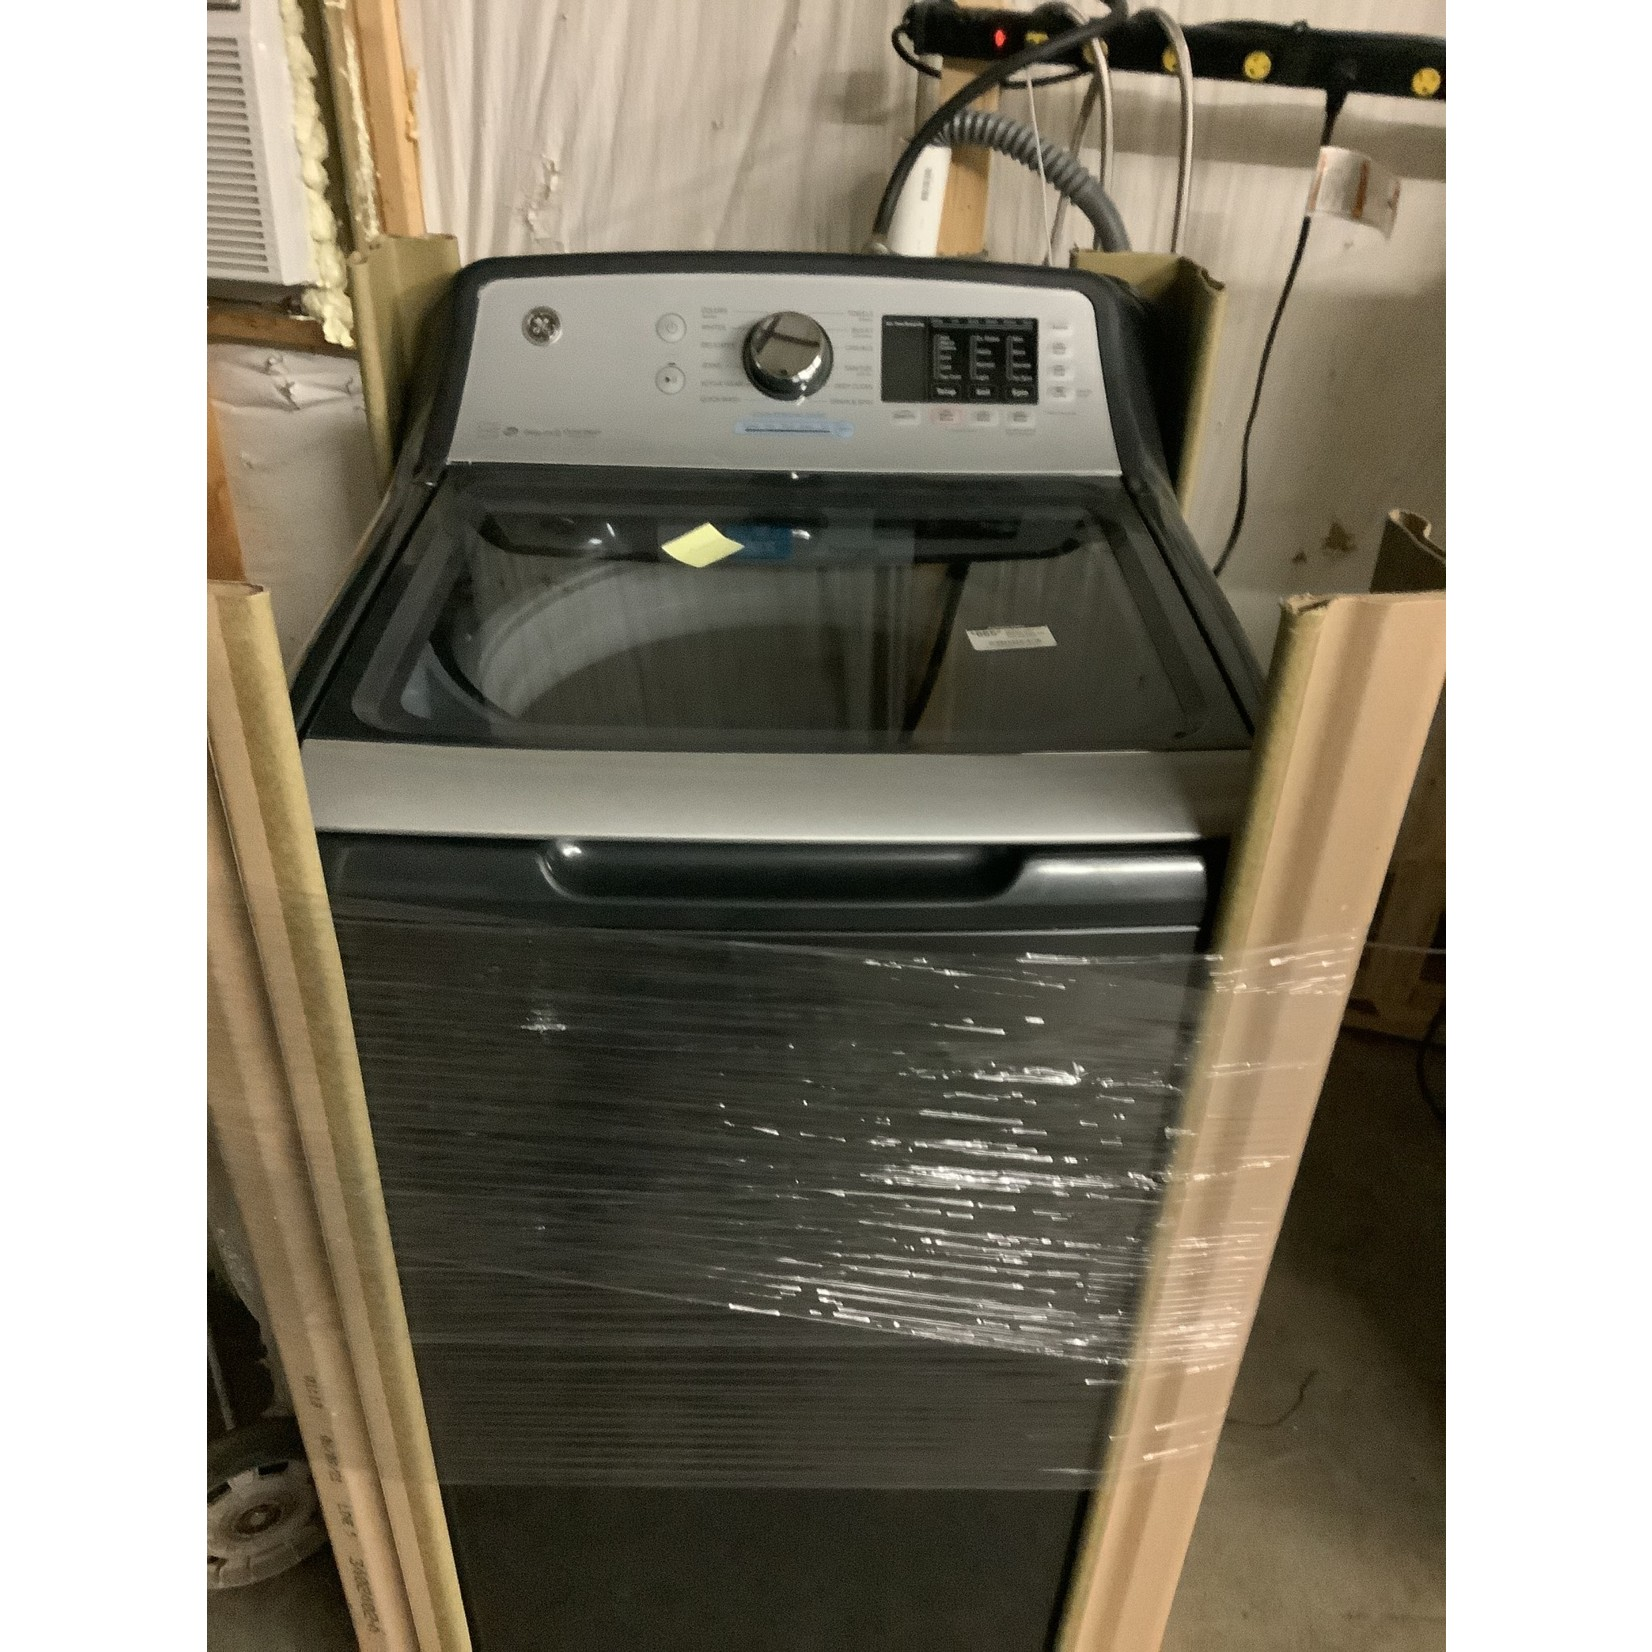 General Electric 4.8 CU.FT. CAPACITY WASHER WITH SANITIZE W/OXI AND FLEX DISPENSE